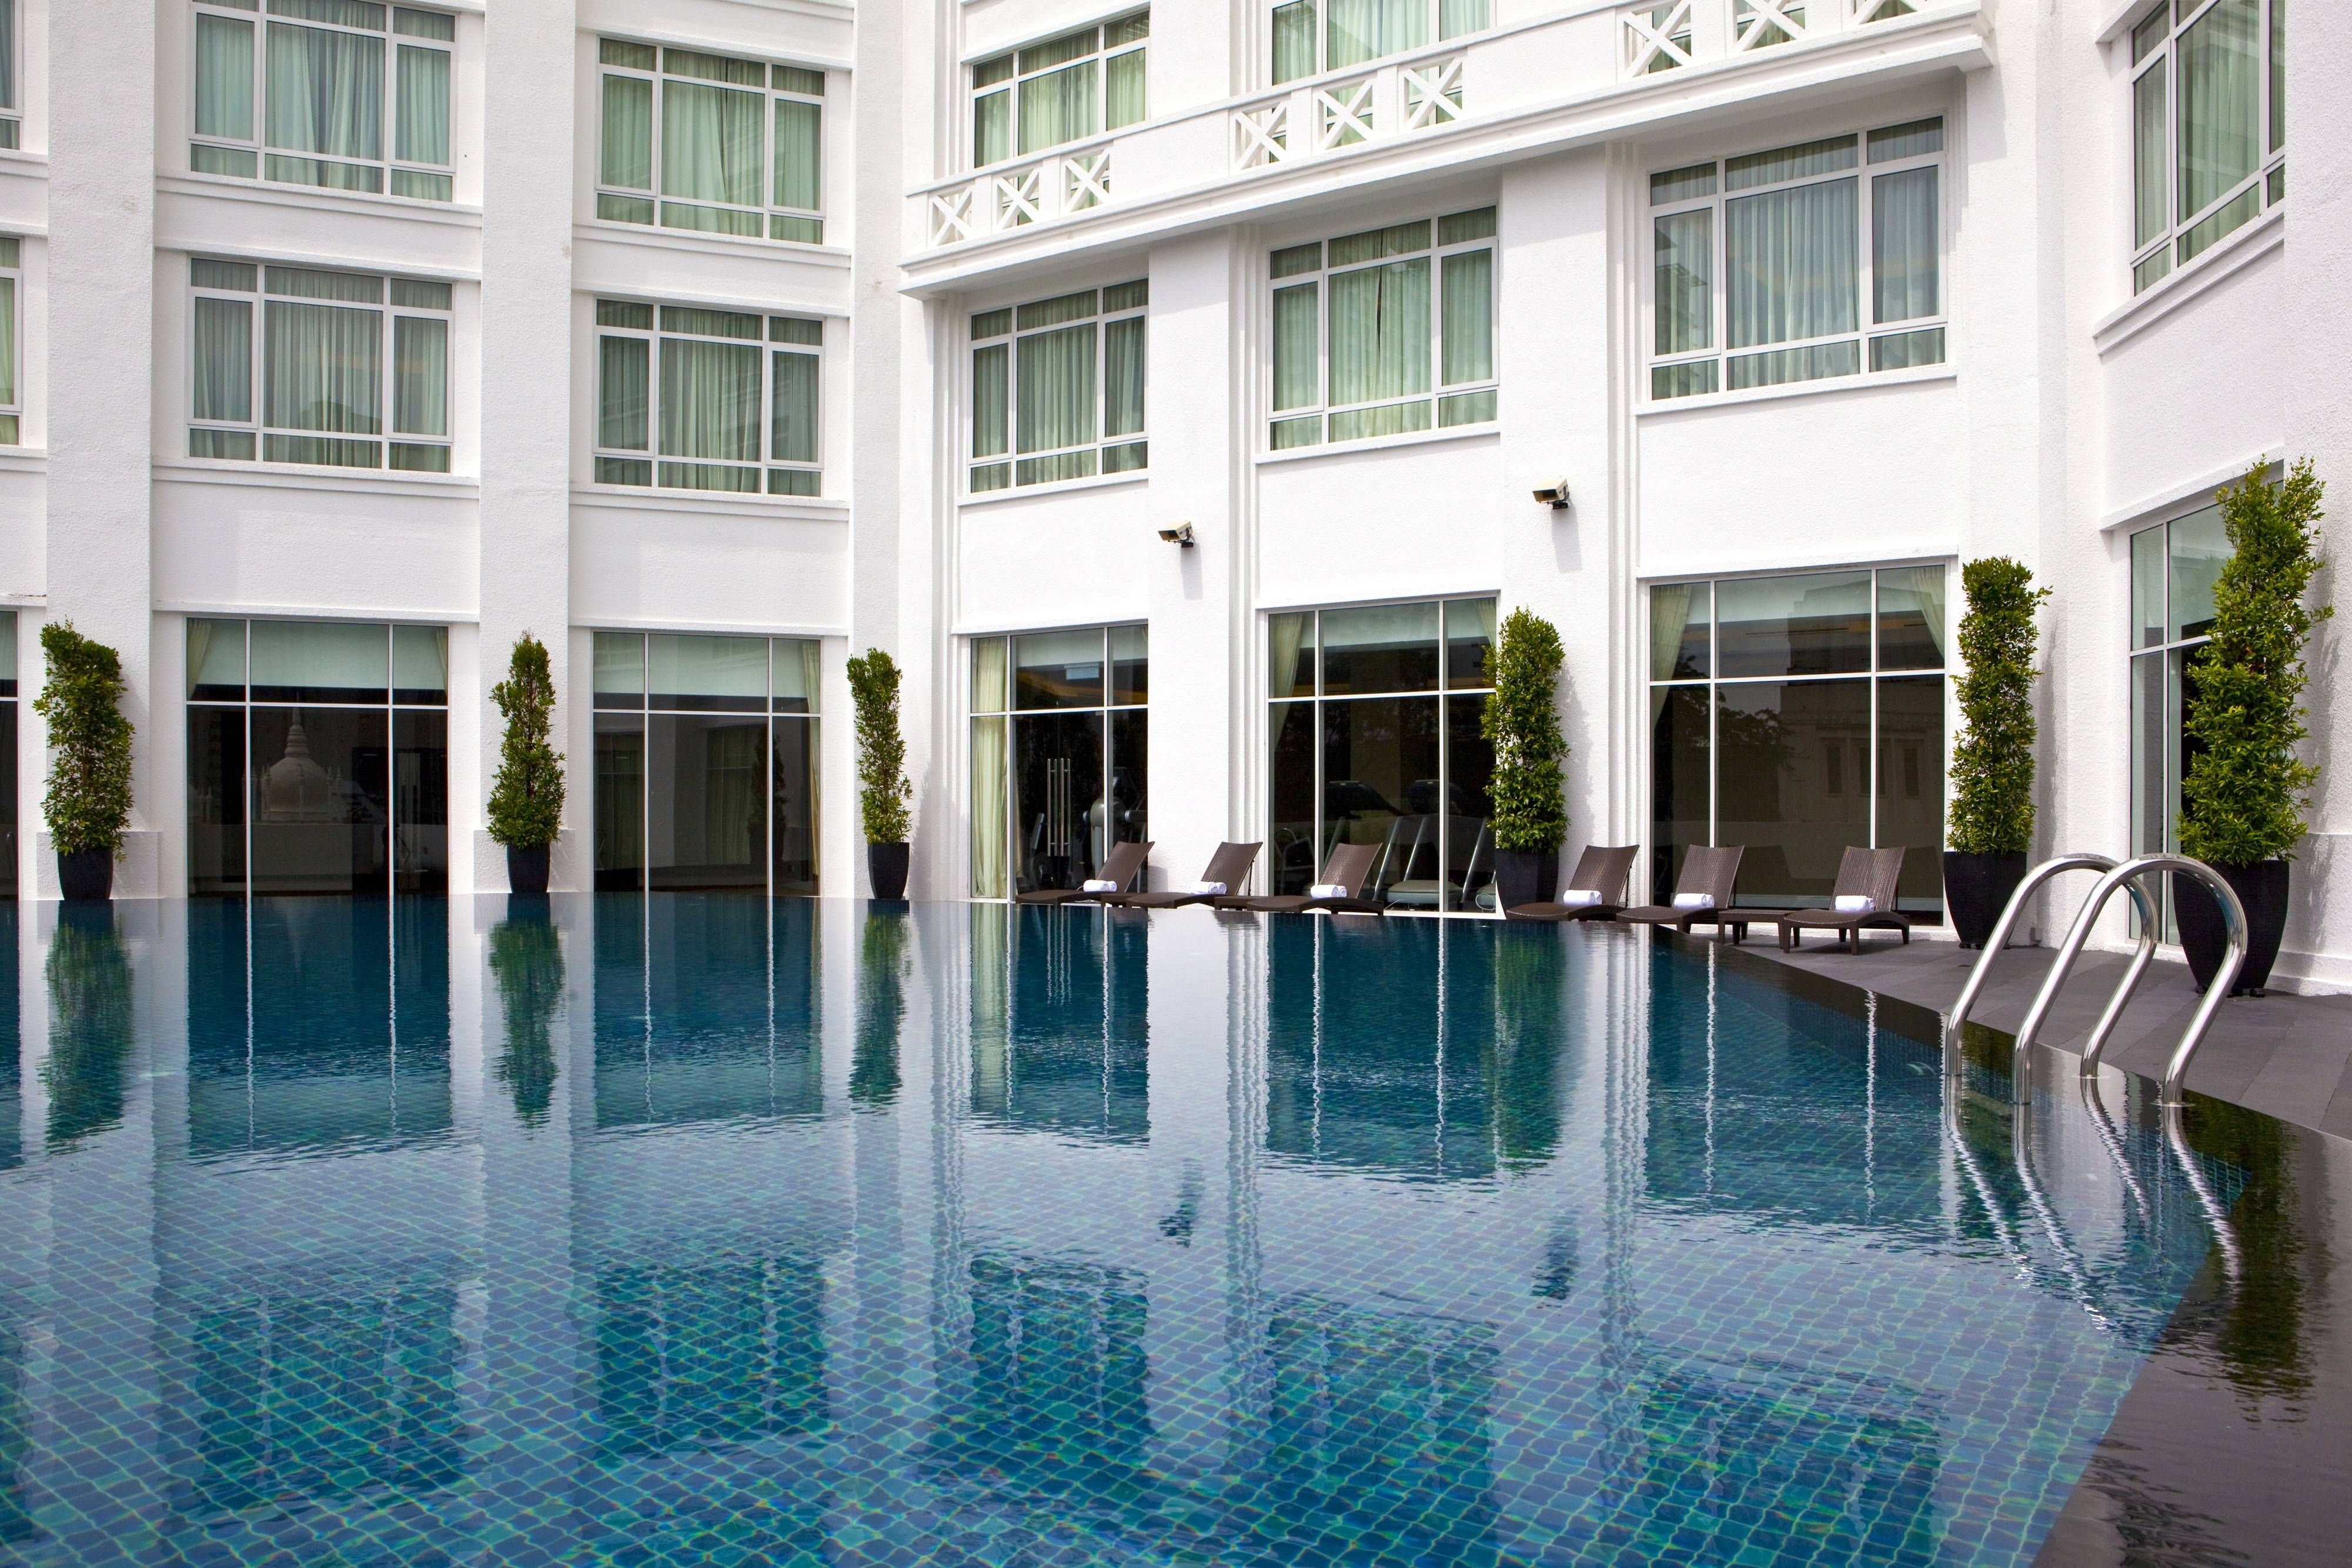 The Majestic Hotel Kuala Lumpur Autograph Collection Outdoor Pool Tower Wing Guestroom Enjoying Hot Top Luxury Hotels Hotel Kuala Lumpur Majestic Hotel